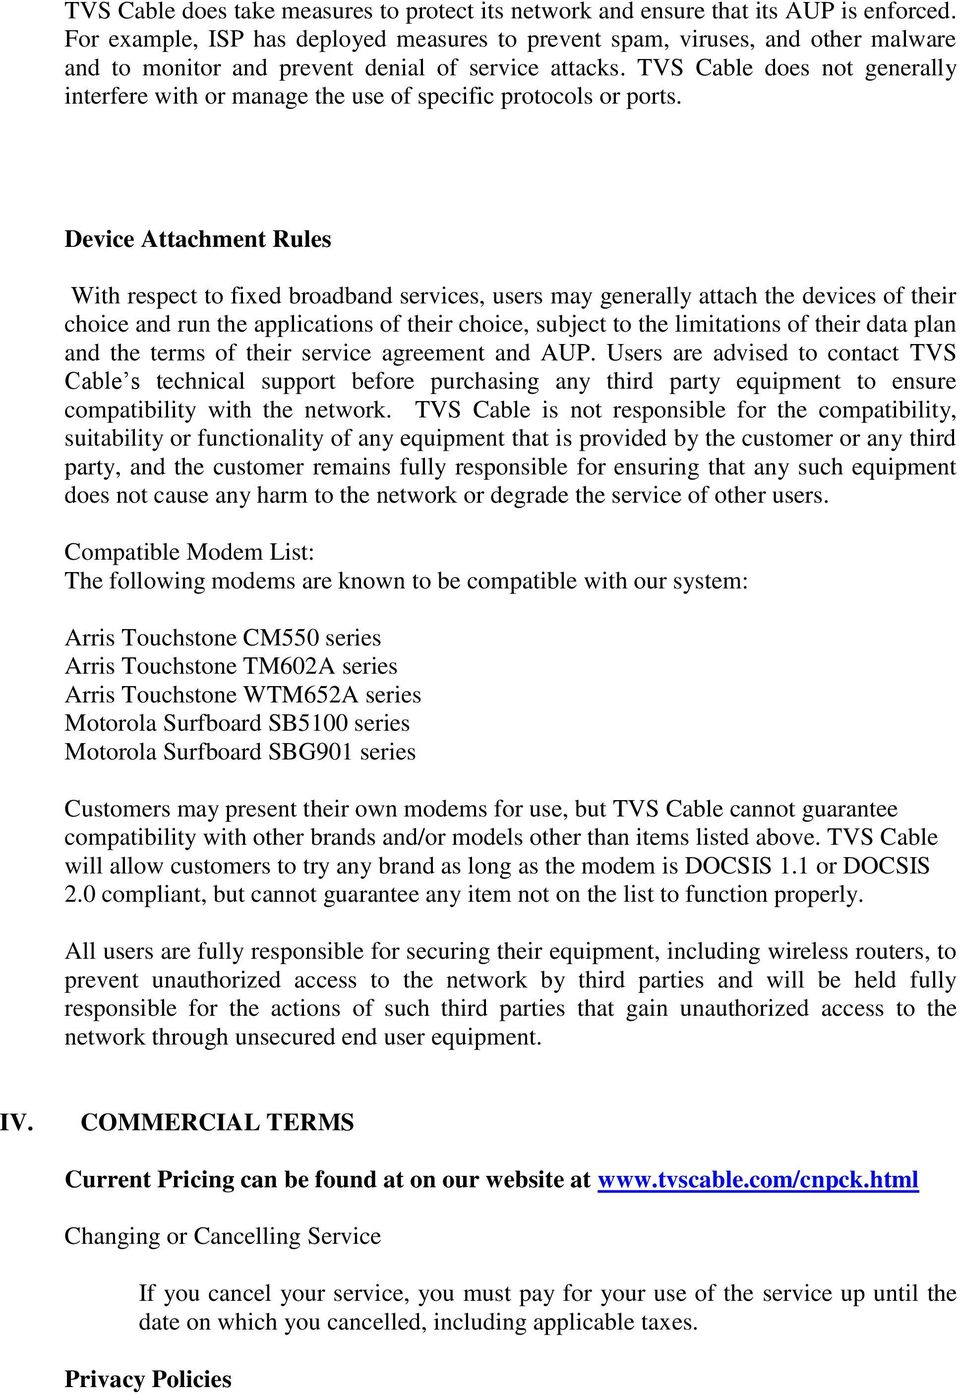 TVS Cable does not generally interfere with or manage the use of specific protocols or ports.